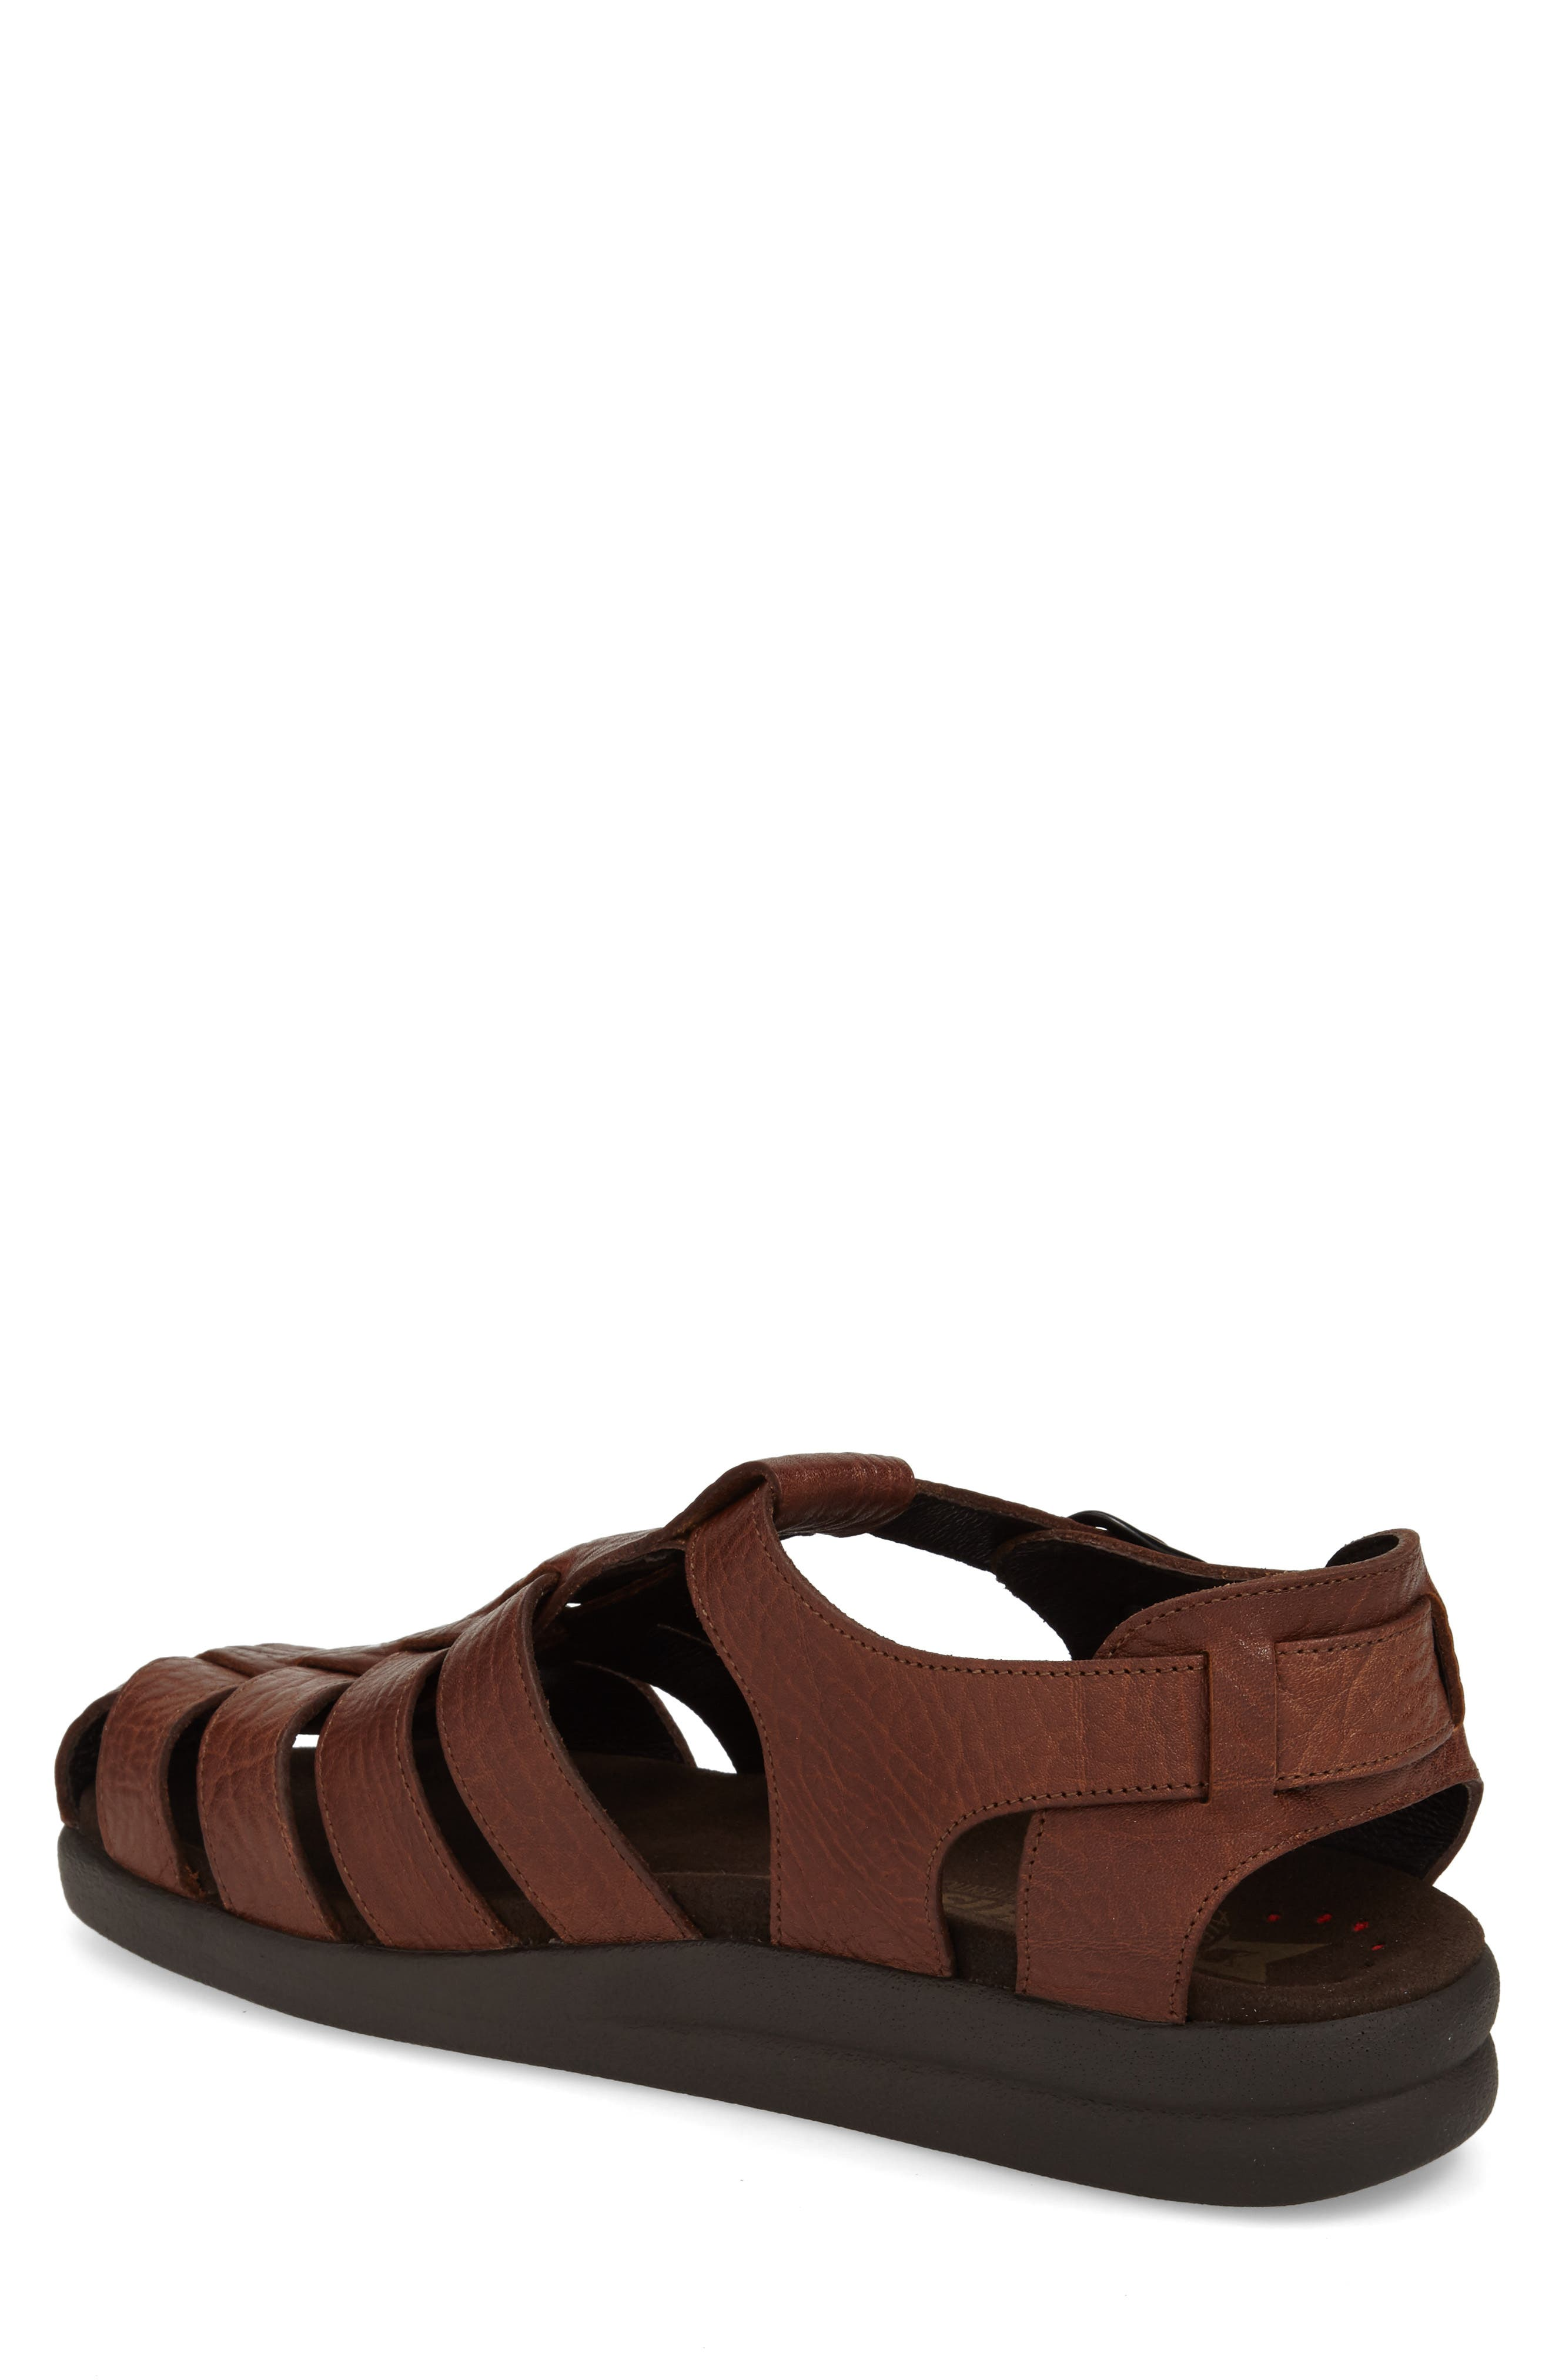 'Sam' Sandal,                             Alternate thumbnail 2, color,                             TAN